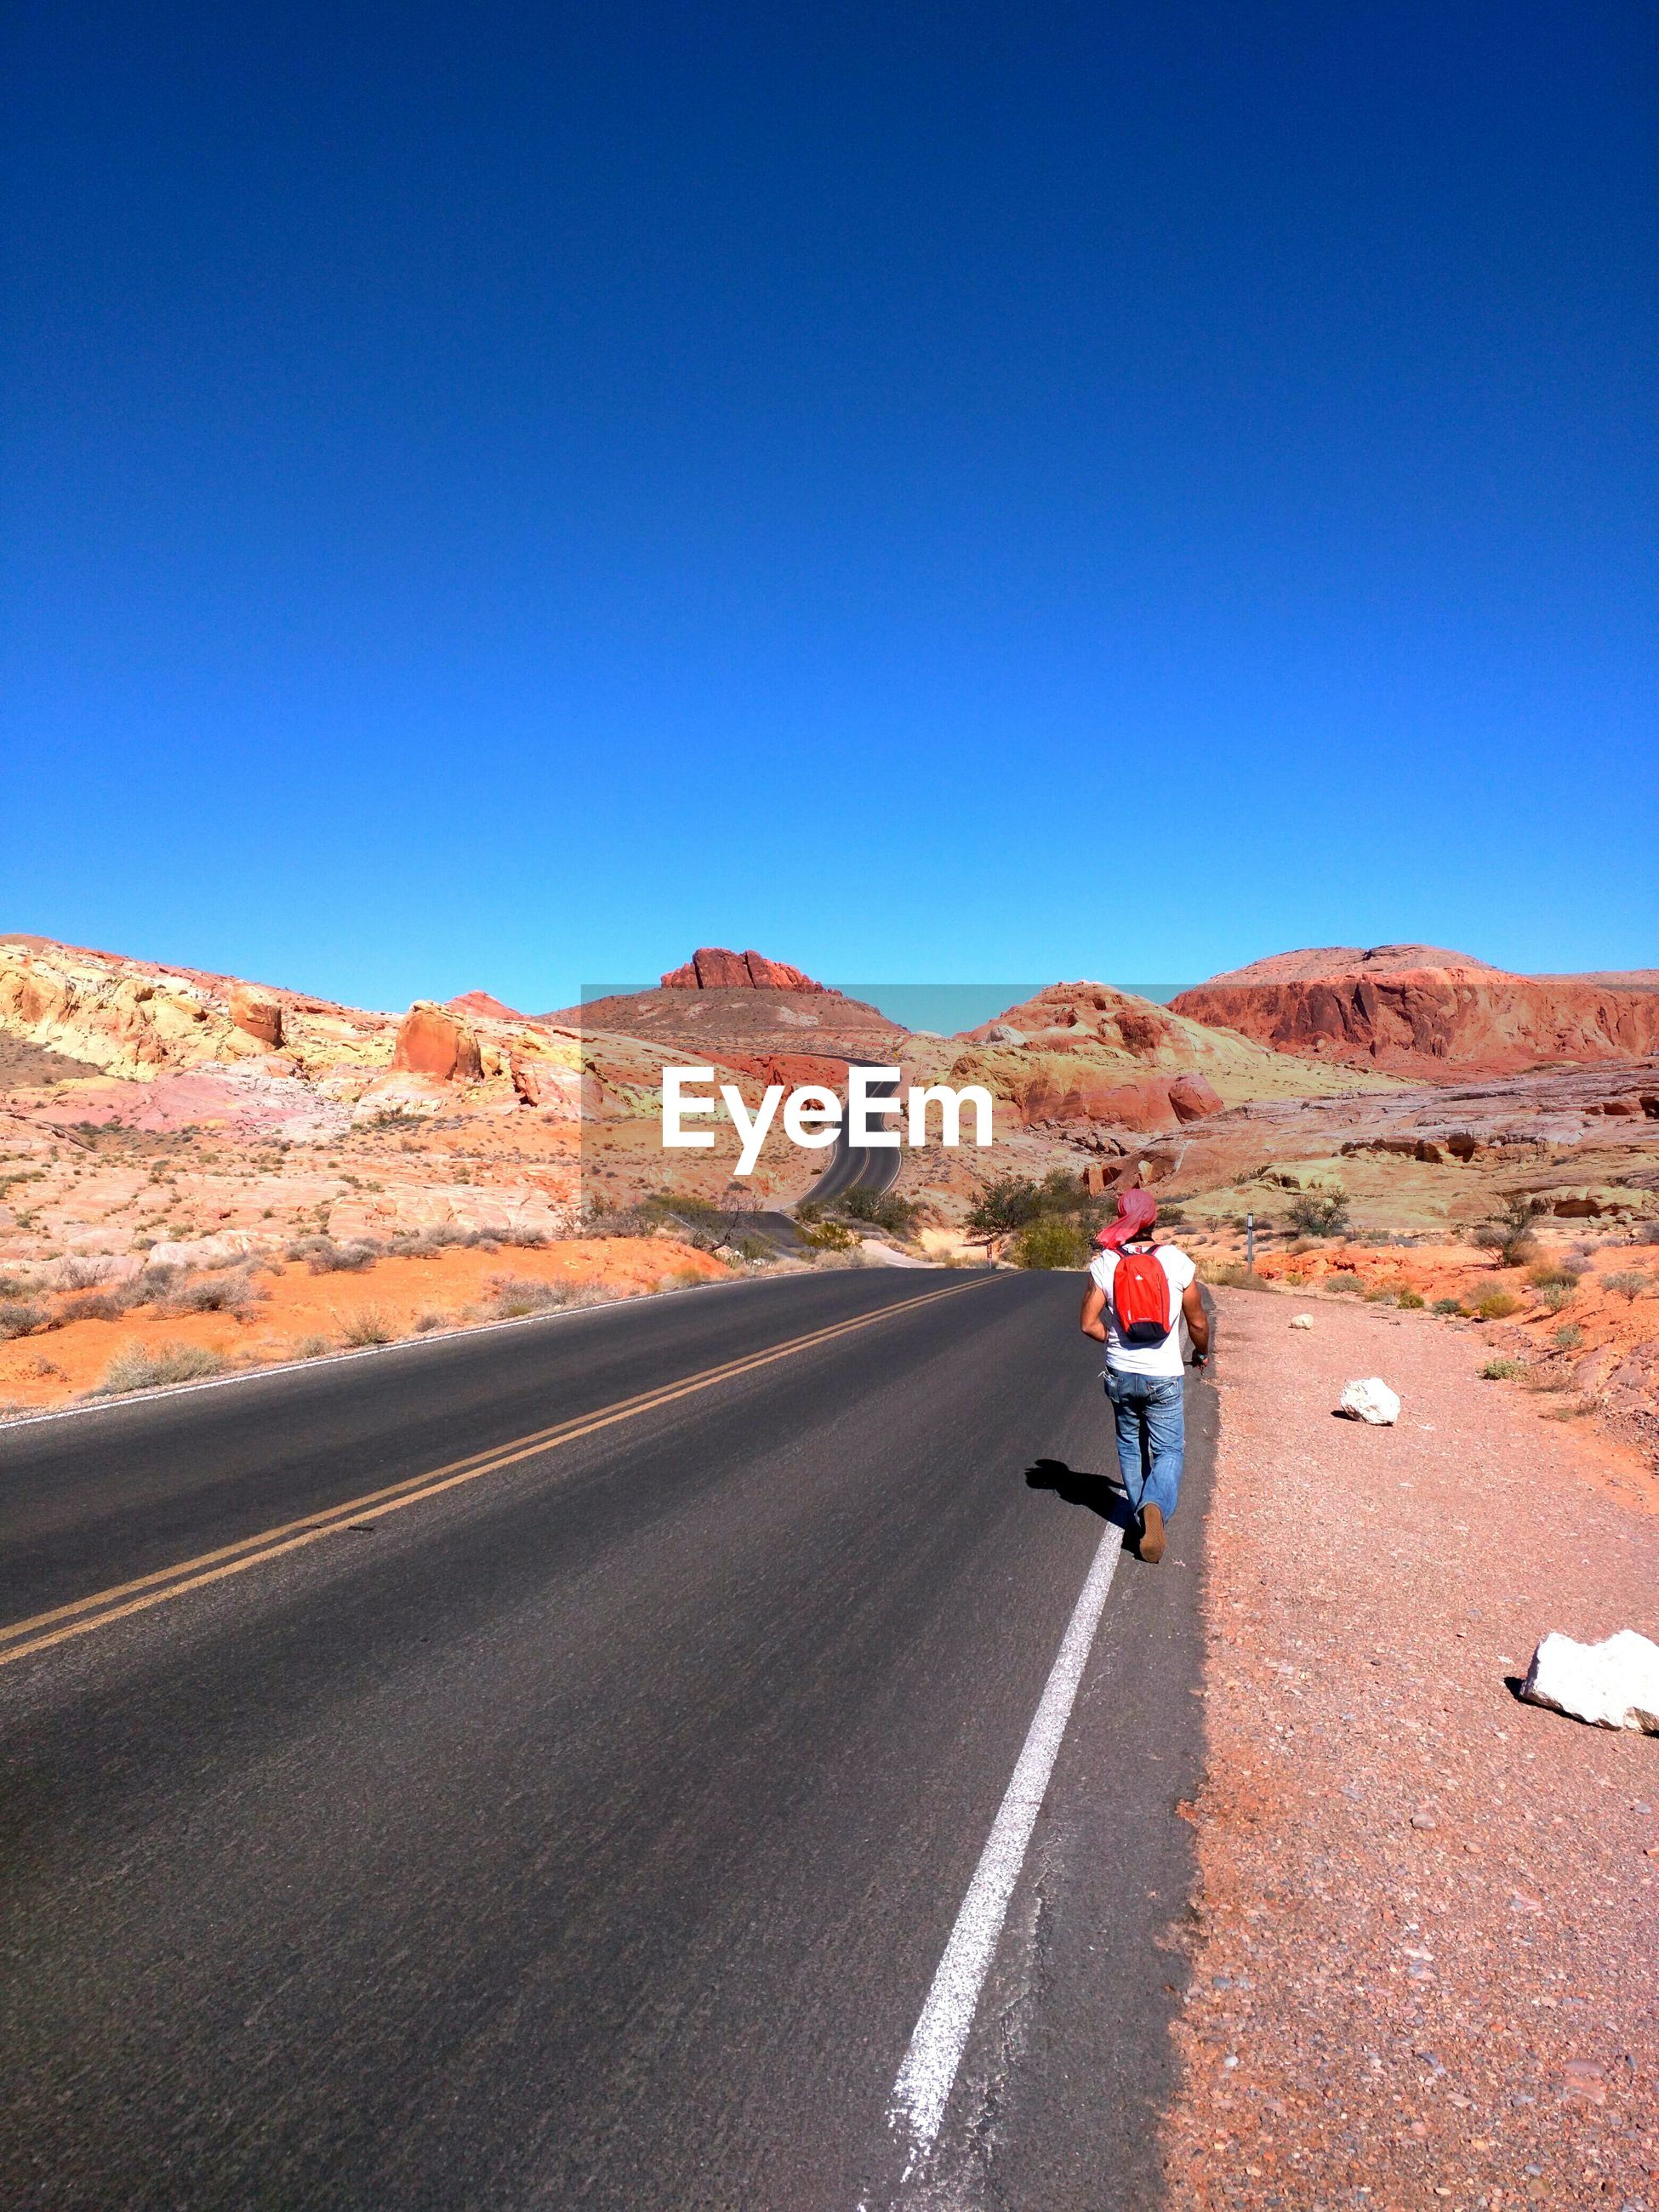 Rear view of man on road amidst desert against clear blue sky